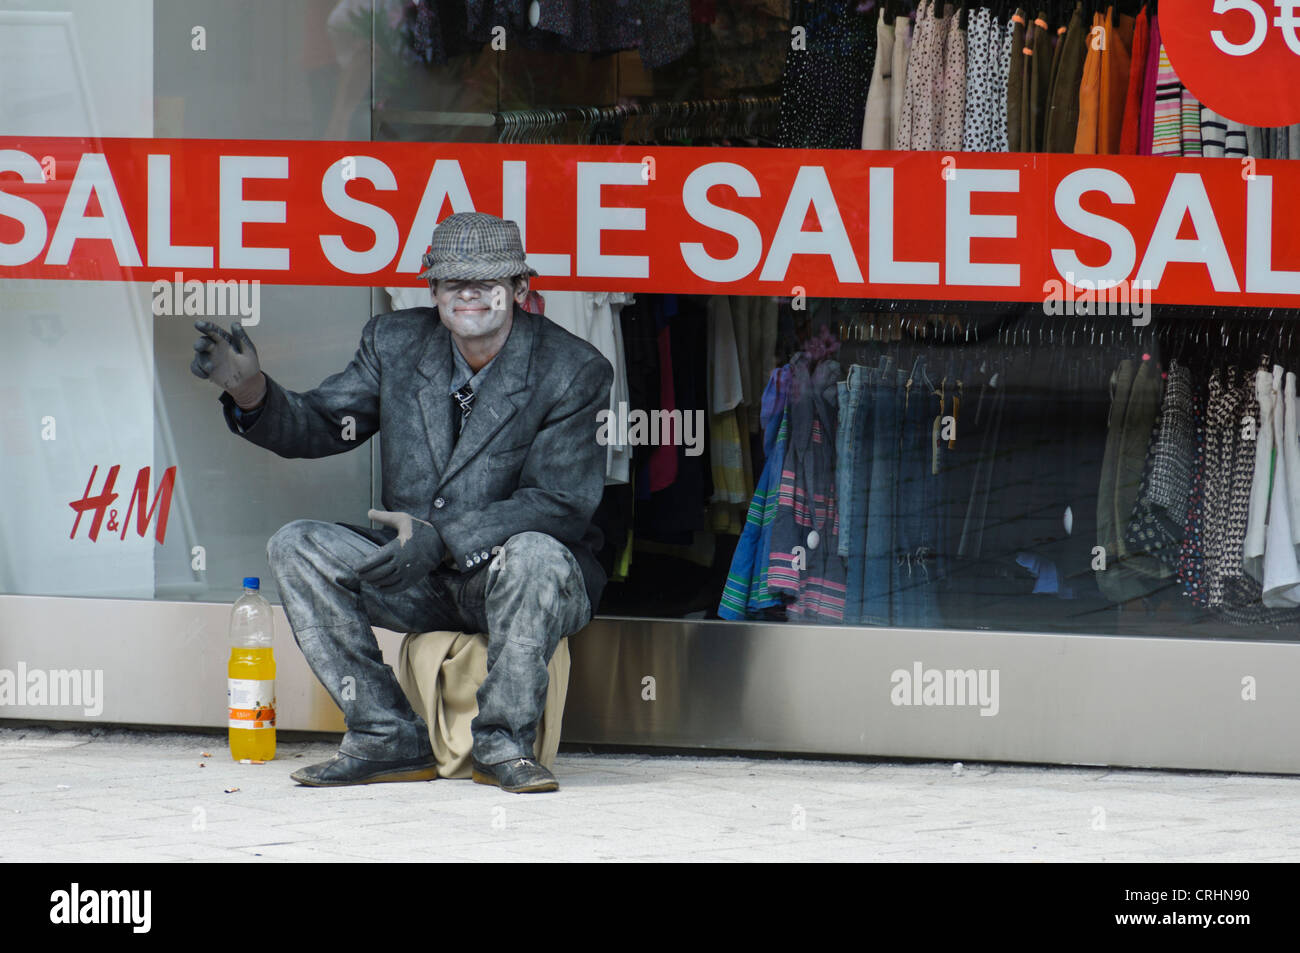 Mime Street Artist sitting in front a H&M Fashion Store Shop Window with 'Sale' Advertisement looking - Stock Image